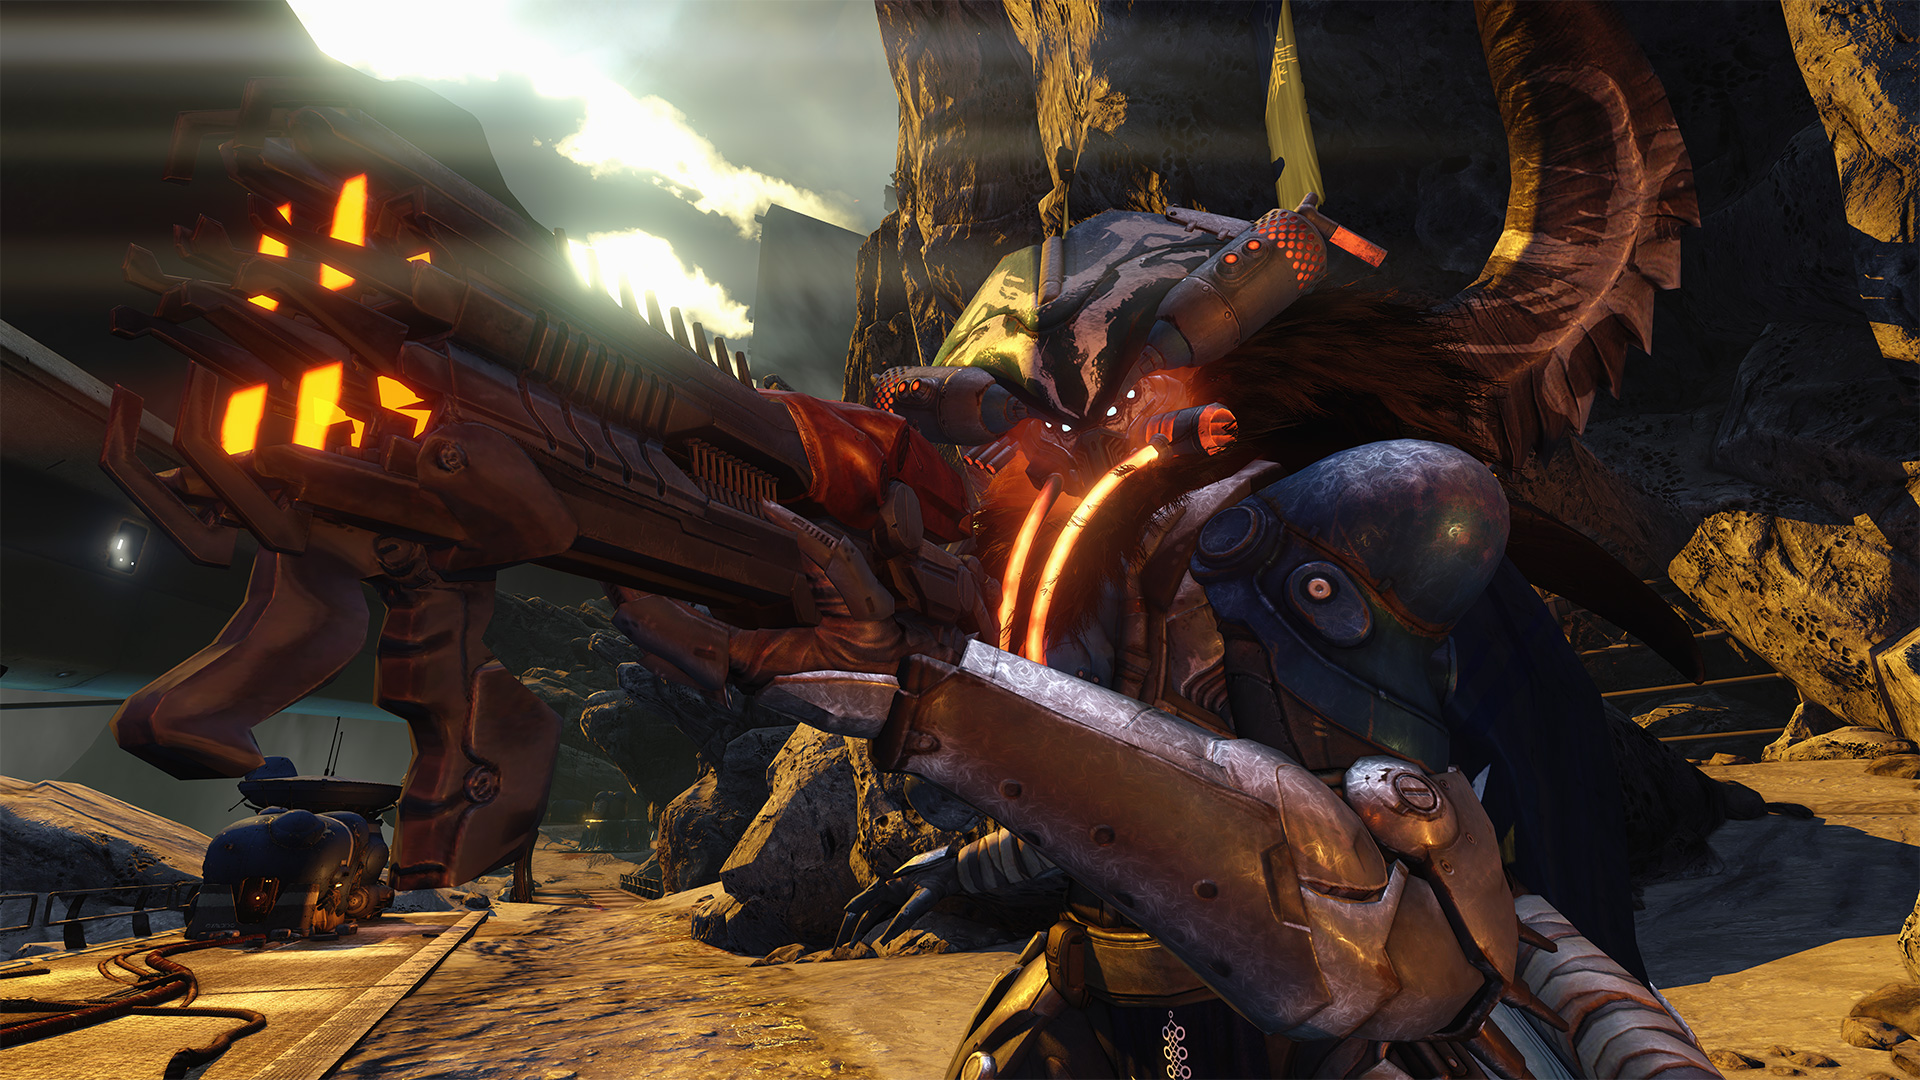 Bungie hires creator of terrific Destiny subreddit as newest community manager